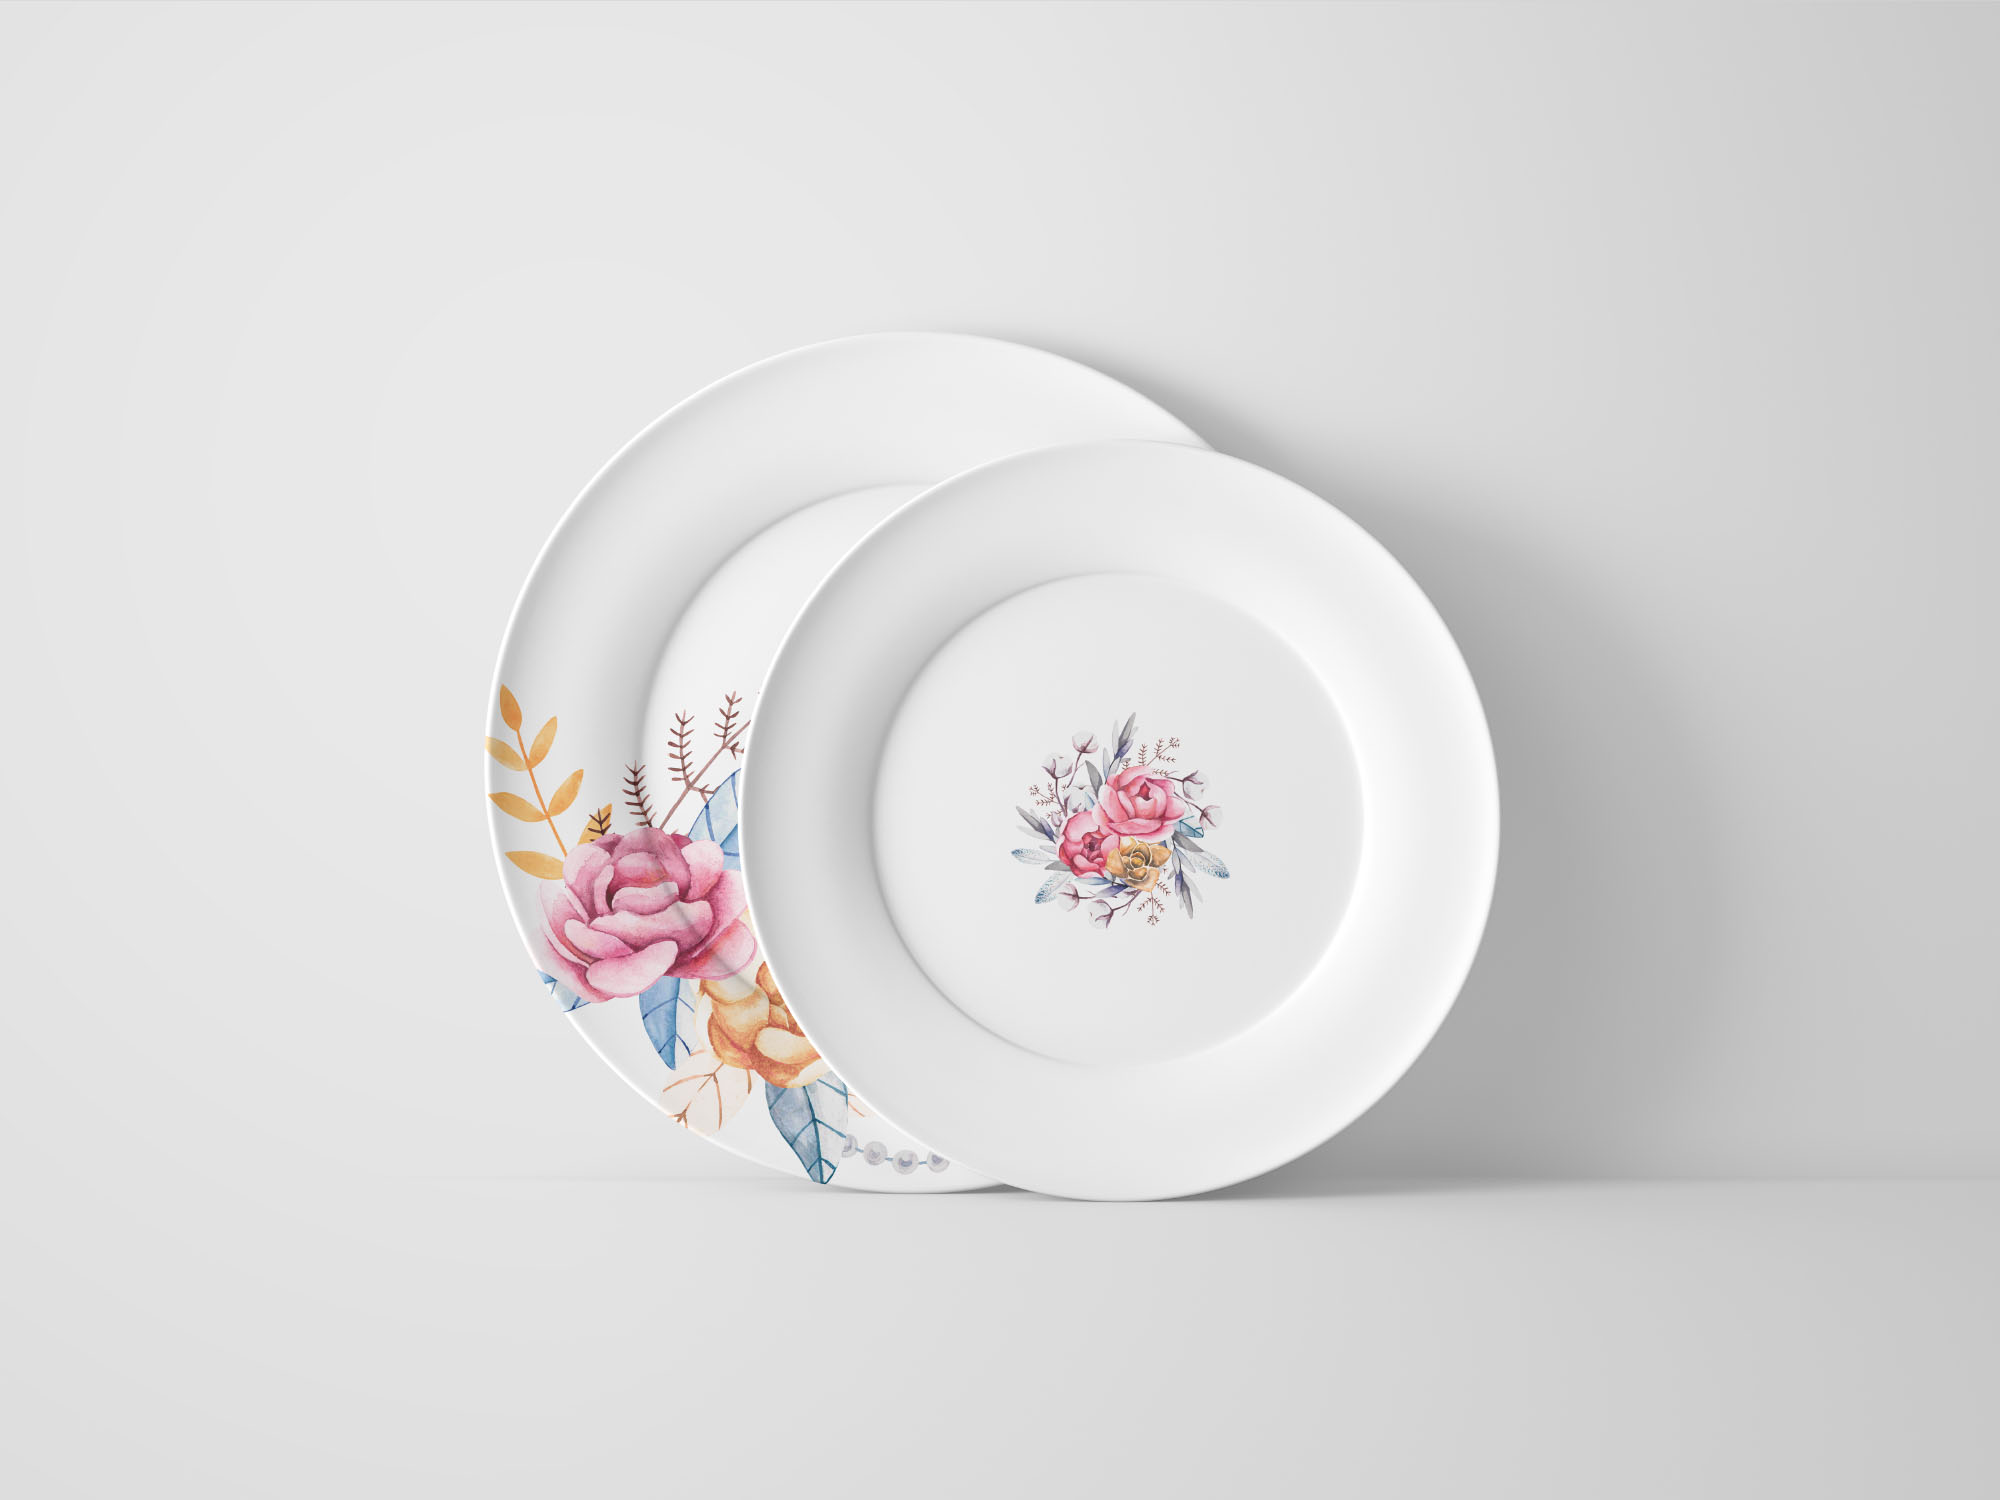 Plates Mockup Front View